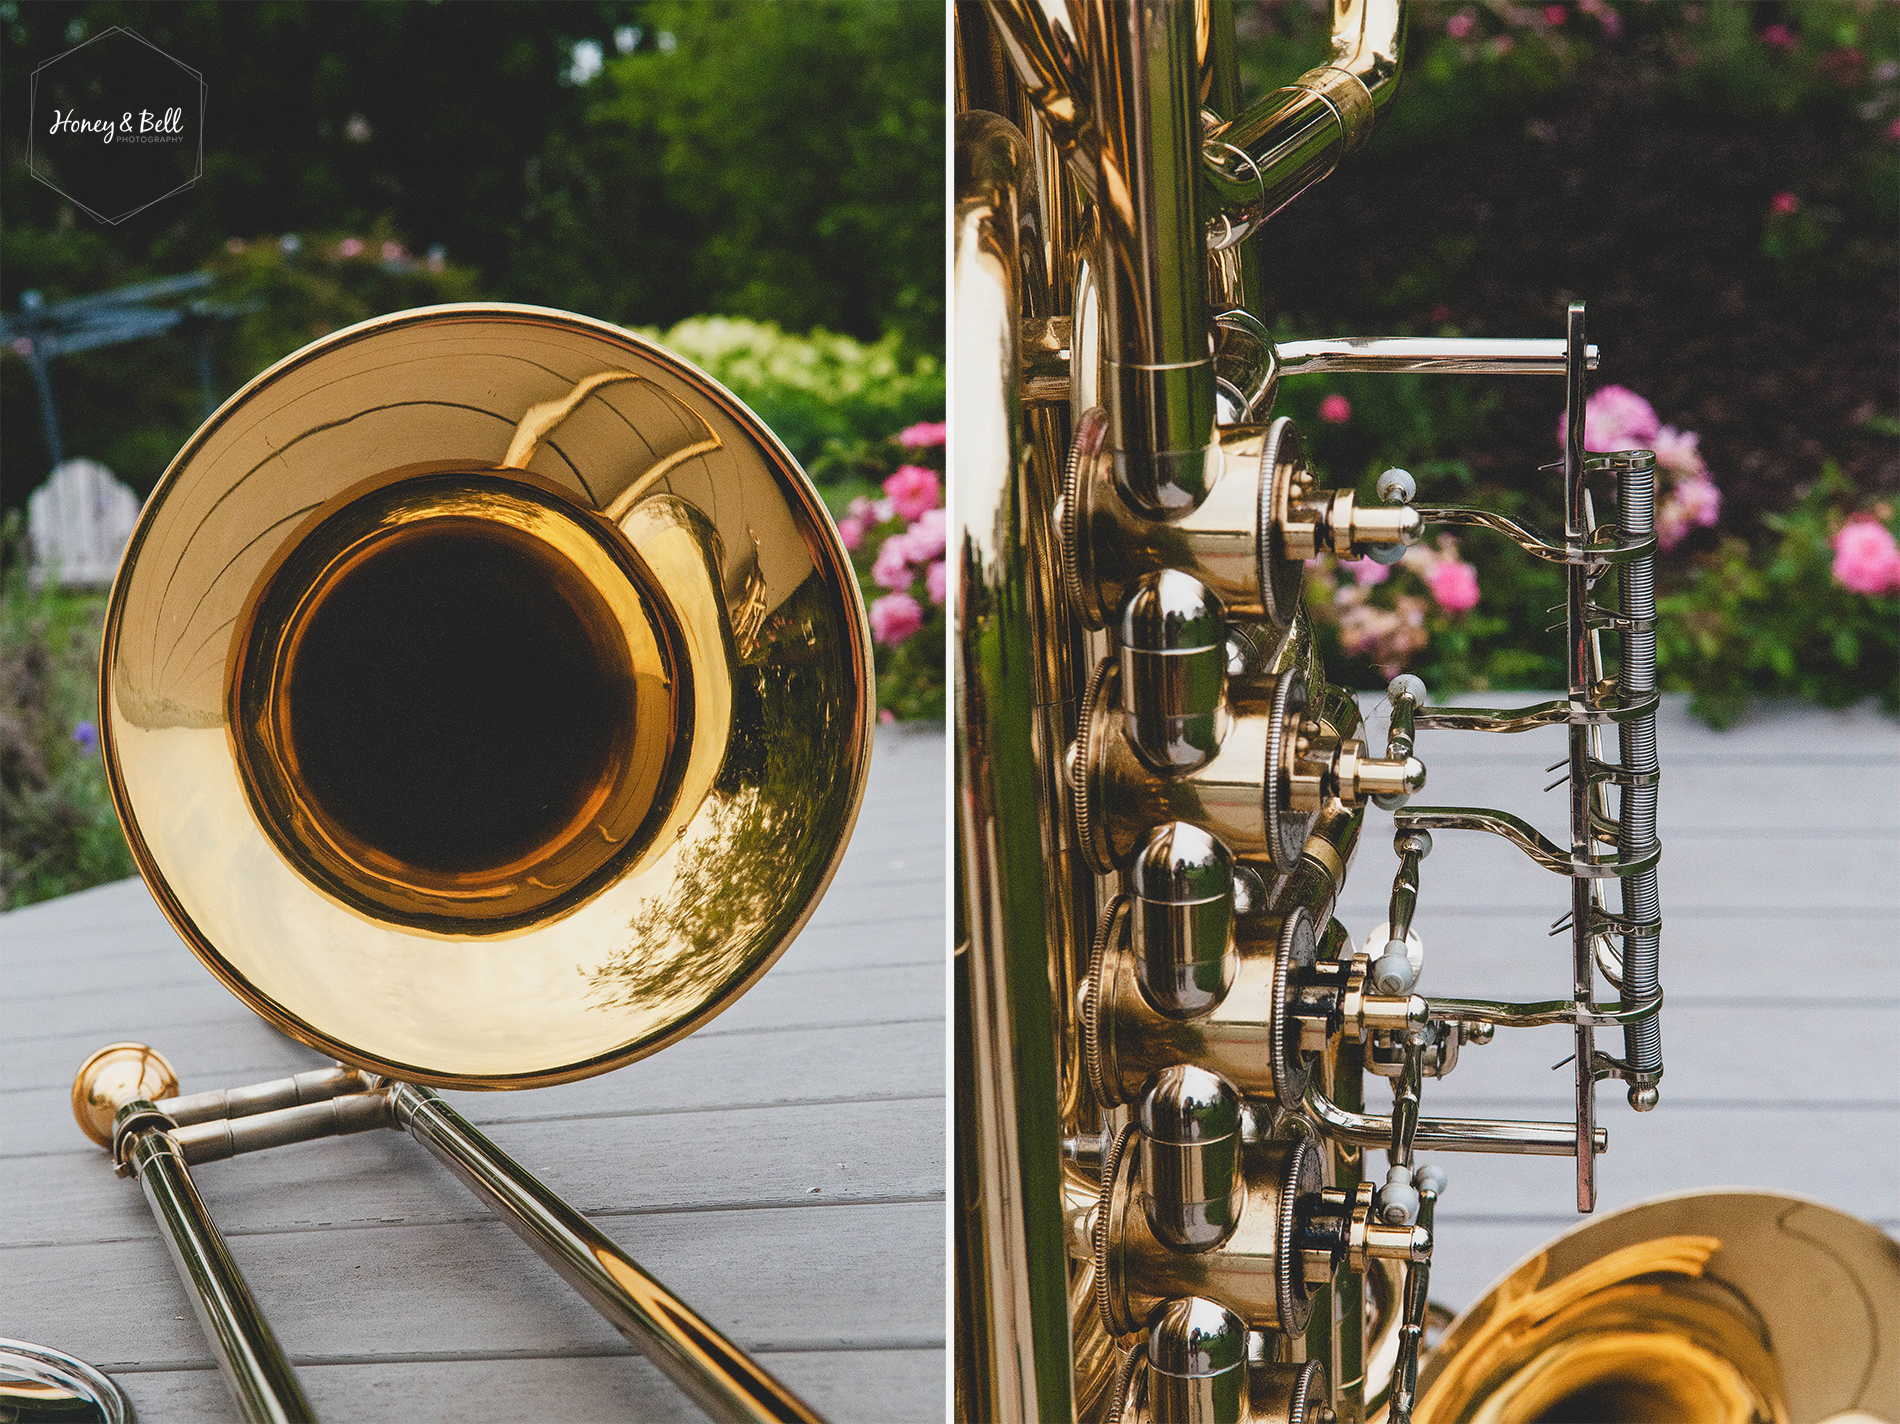 north-of-canada-brass-quintet-detroit-michigan-grosse-pointe-band-photographer-13